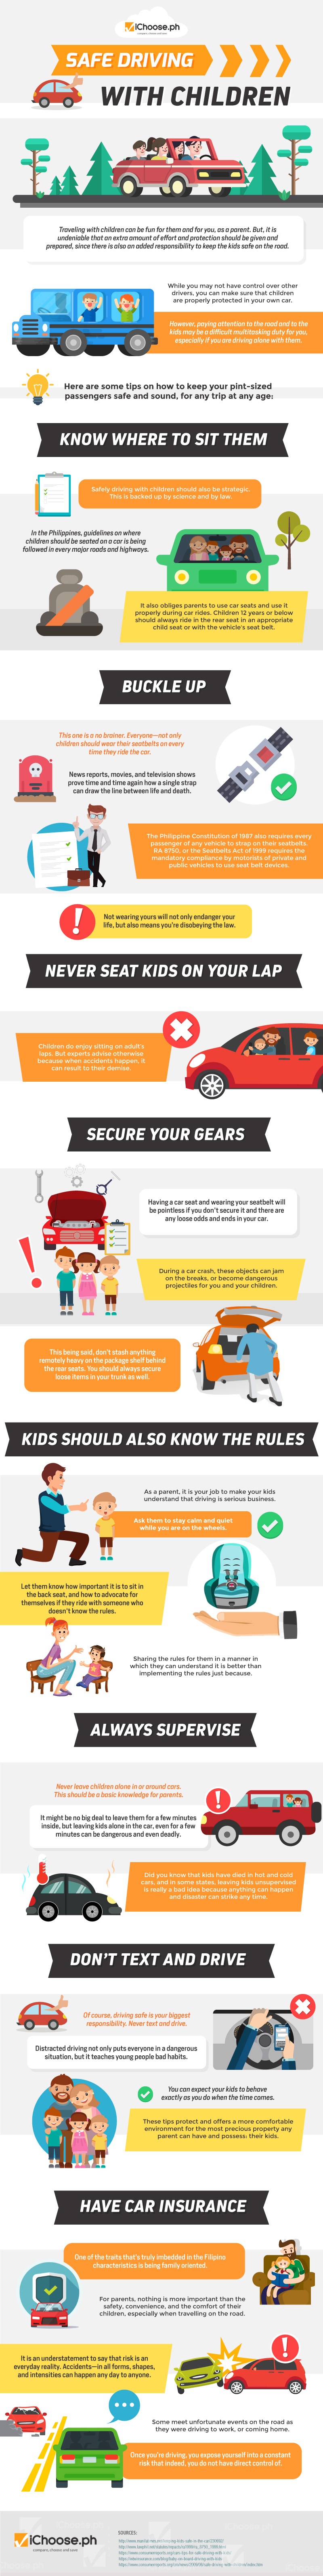 Safe Driving With Children [Infographic]